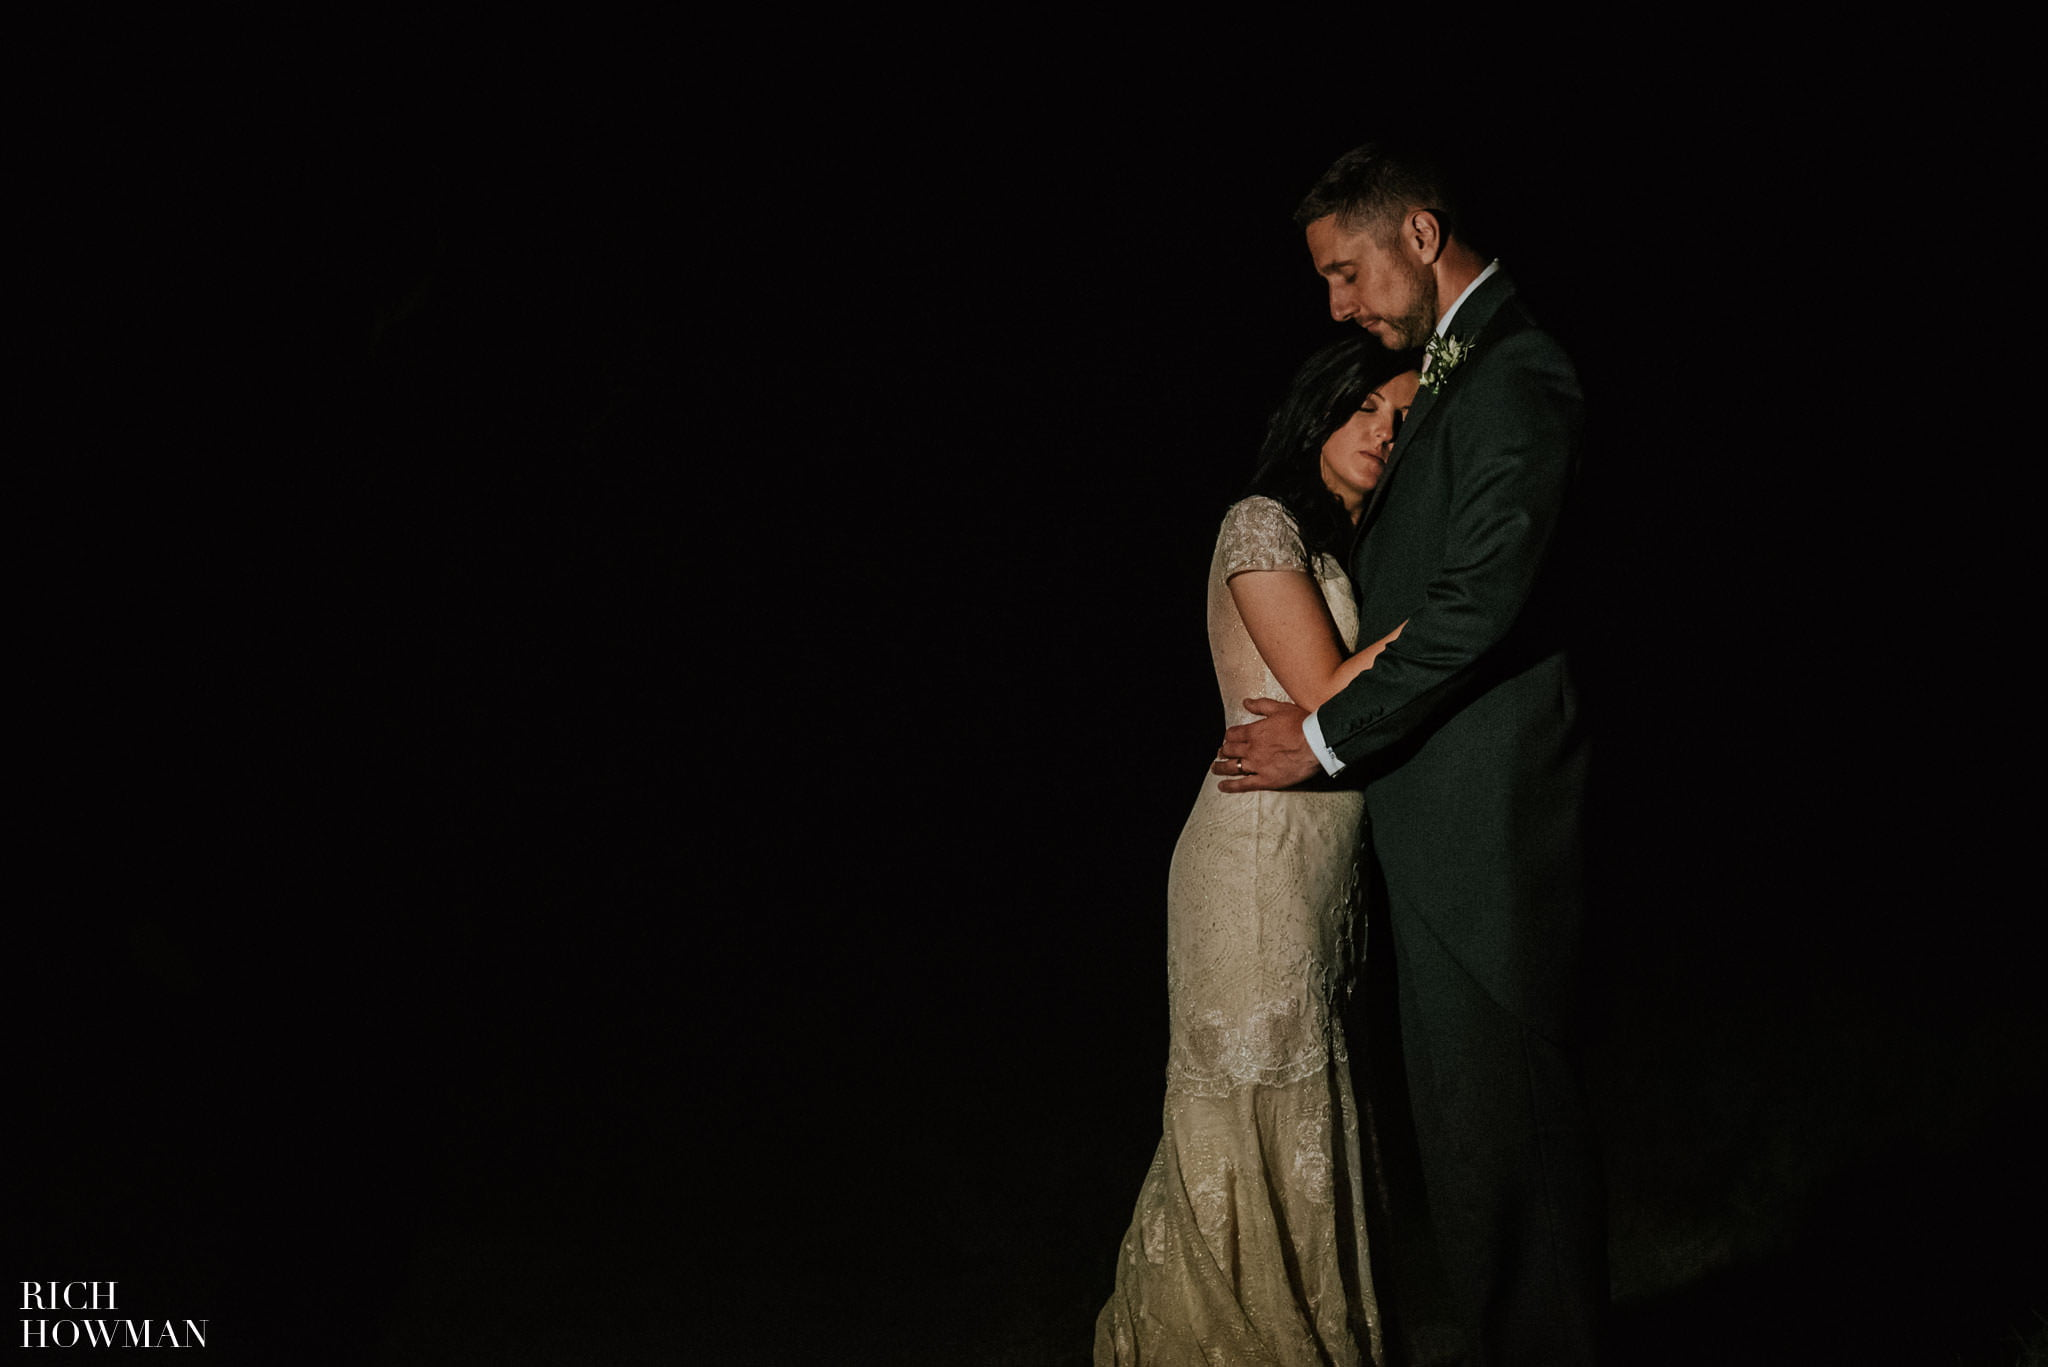 Low light creative wedding portrait photograph during an Iscoyd Park Wedding